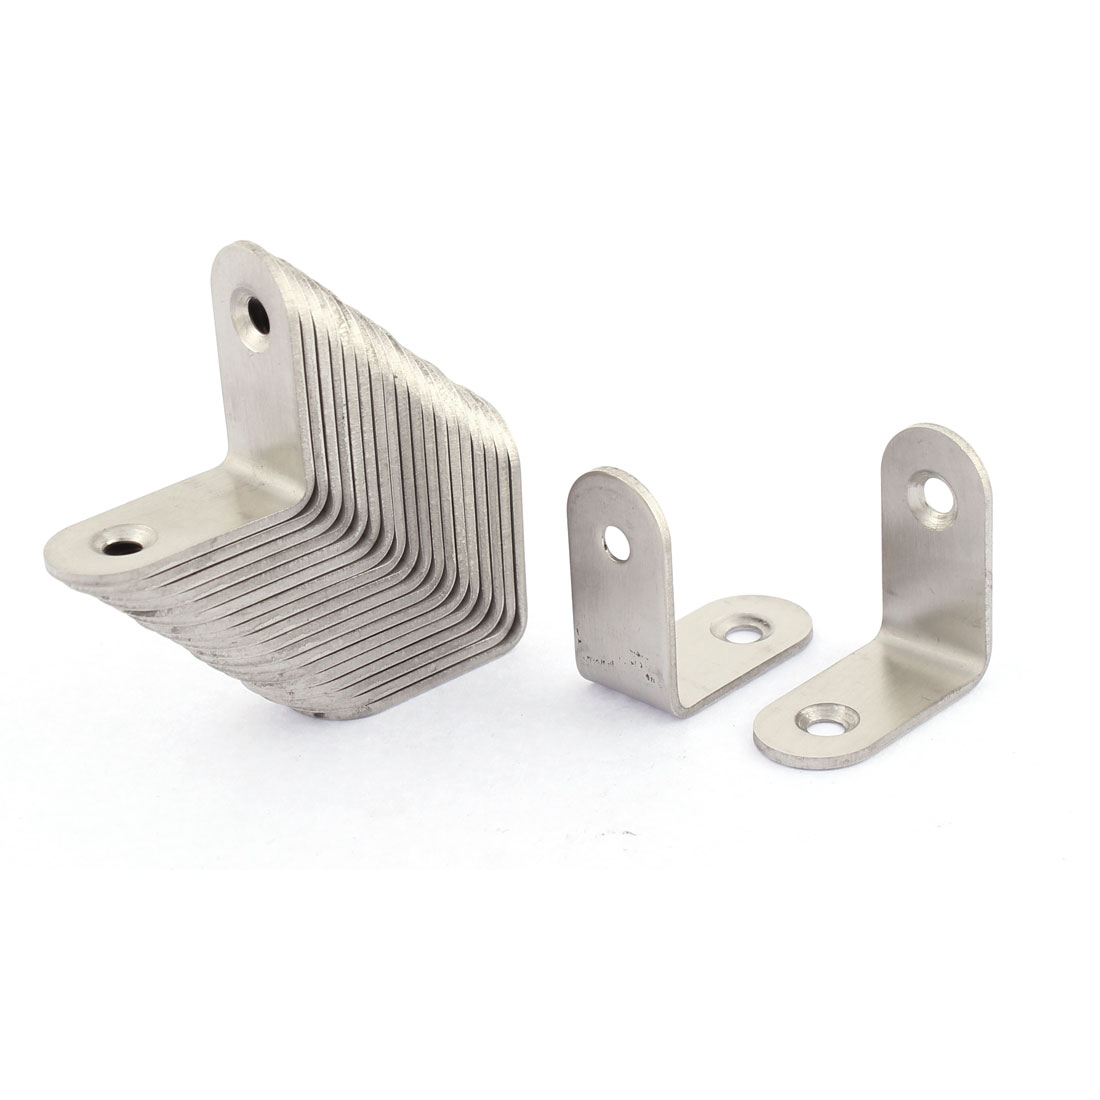 Stainless Steel L Shaped Right Angle Bracket 30 x 30mm 20pcs